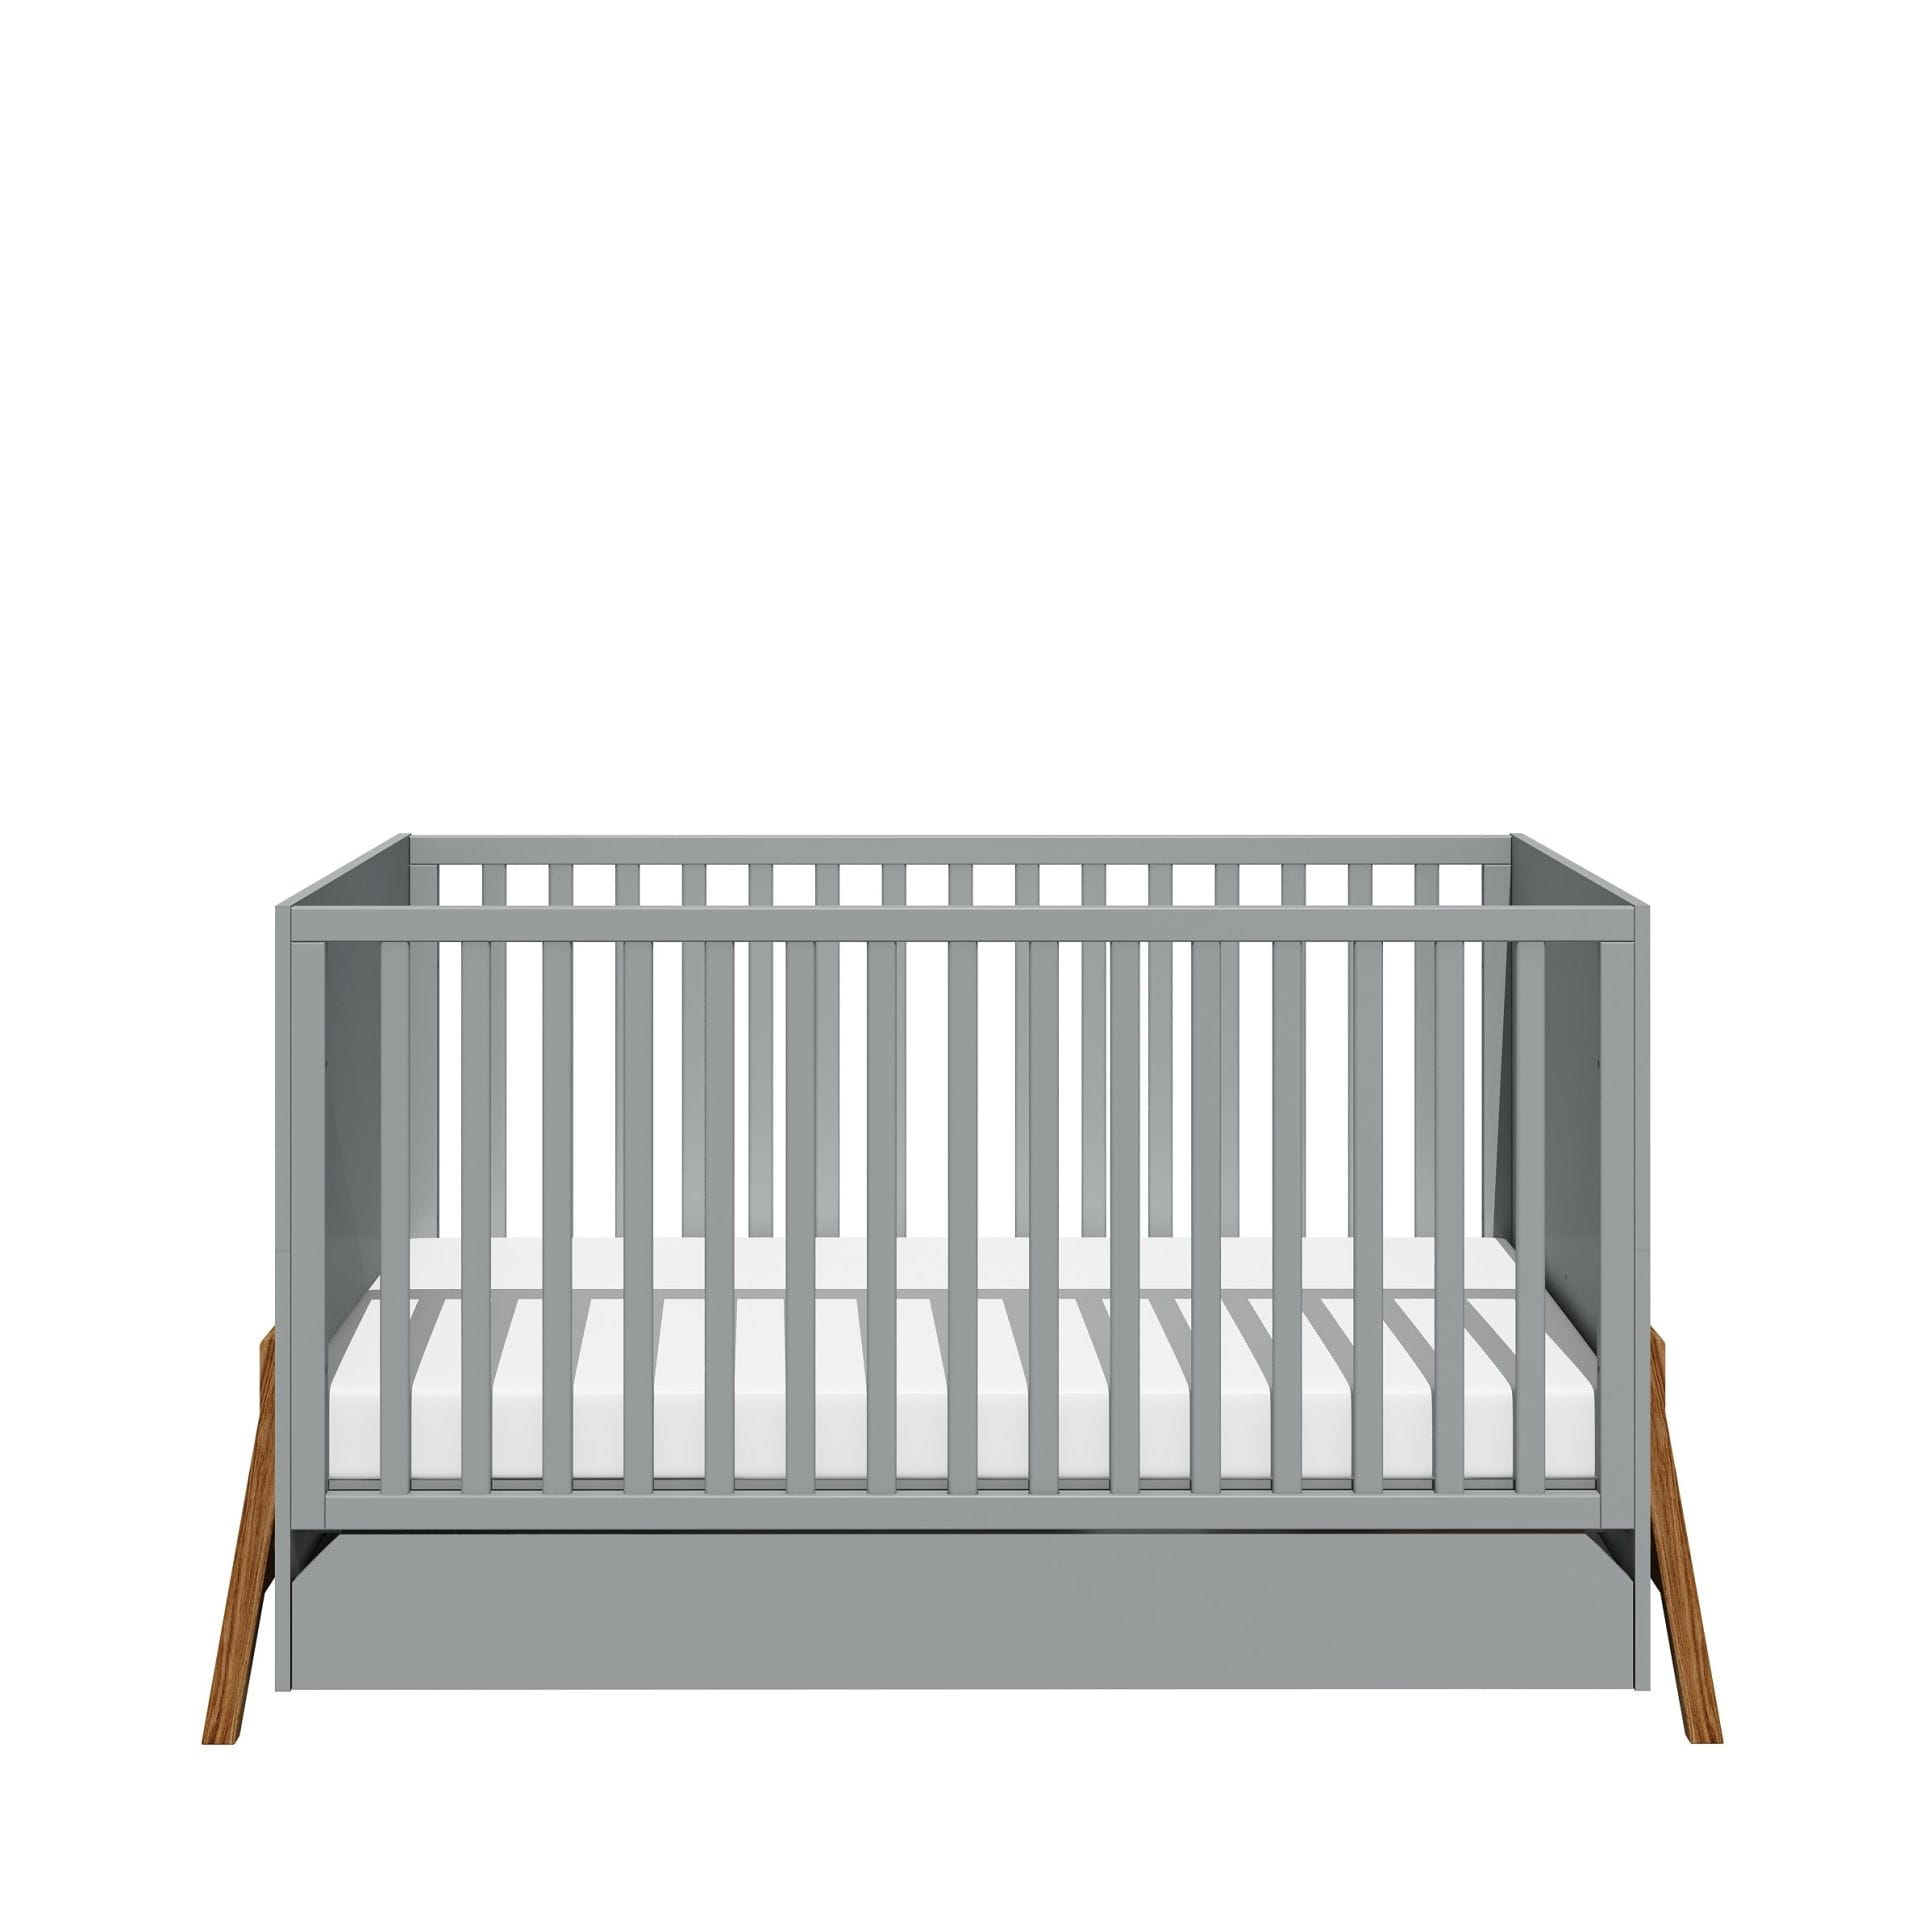 Lotta_gray_cot_bed_70x140_01.jpg